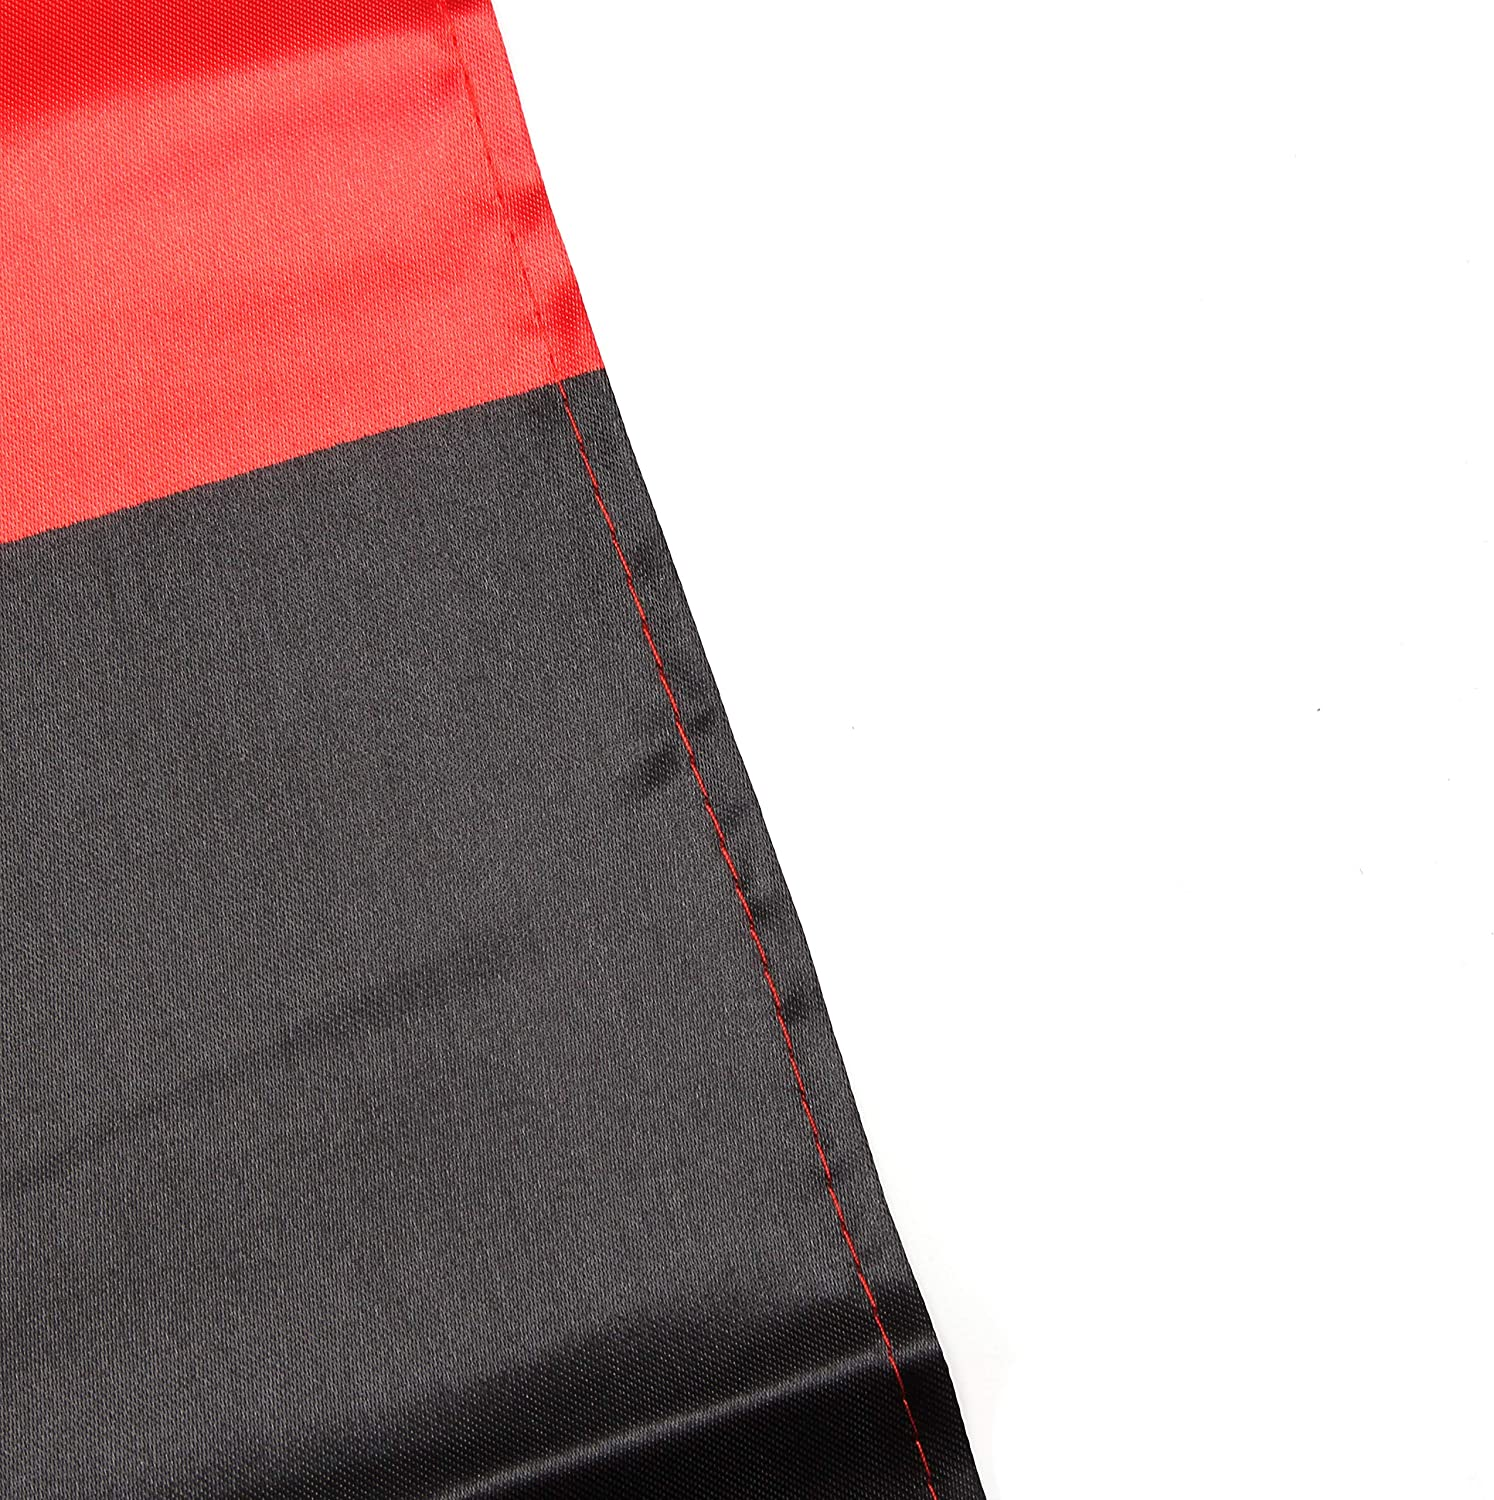 GLUUGES FC 3x5ft Football Club Polyester Flag for Manchester United Fan Use Indoor or Outdoor